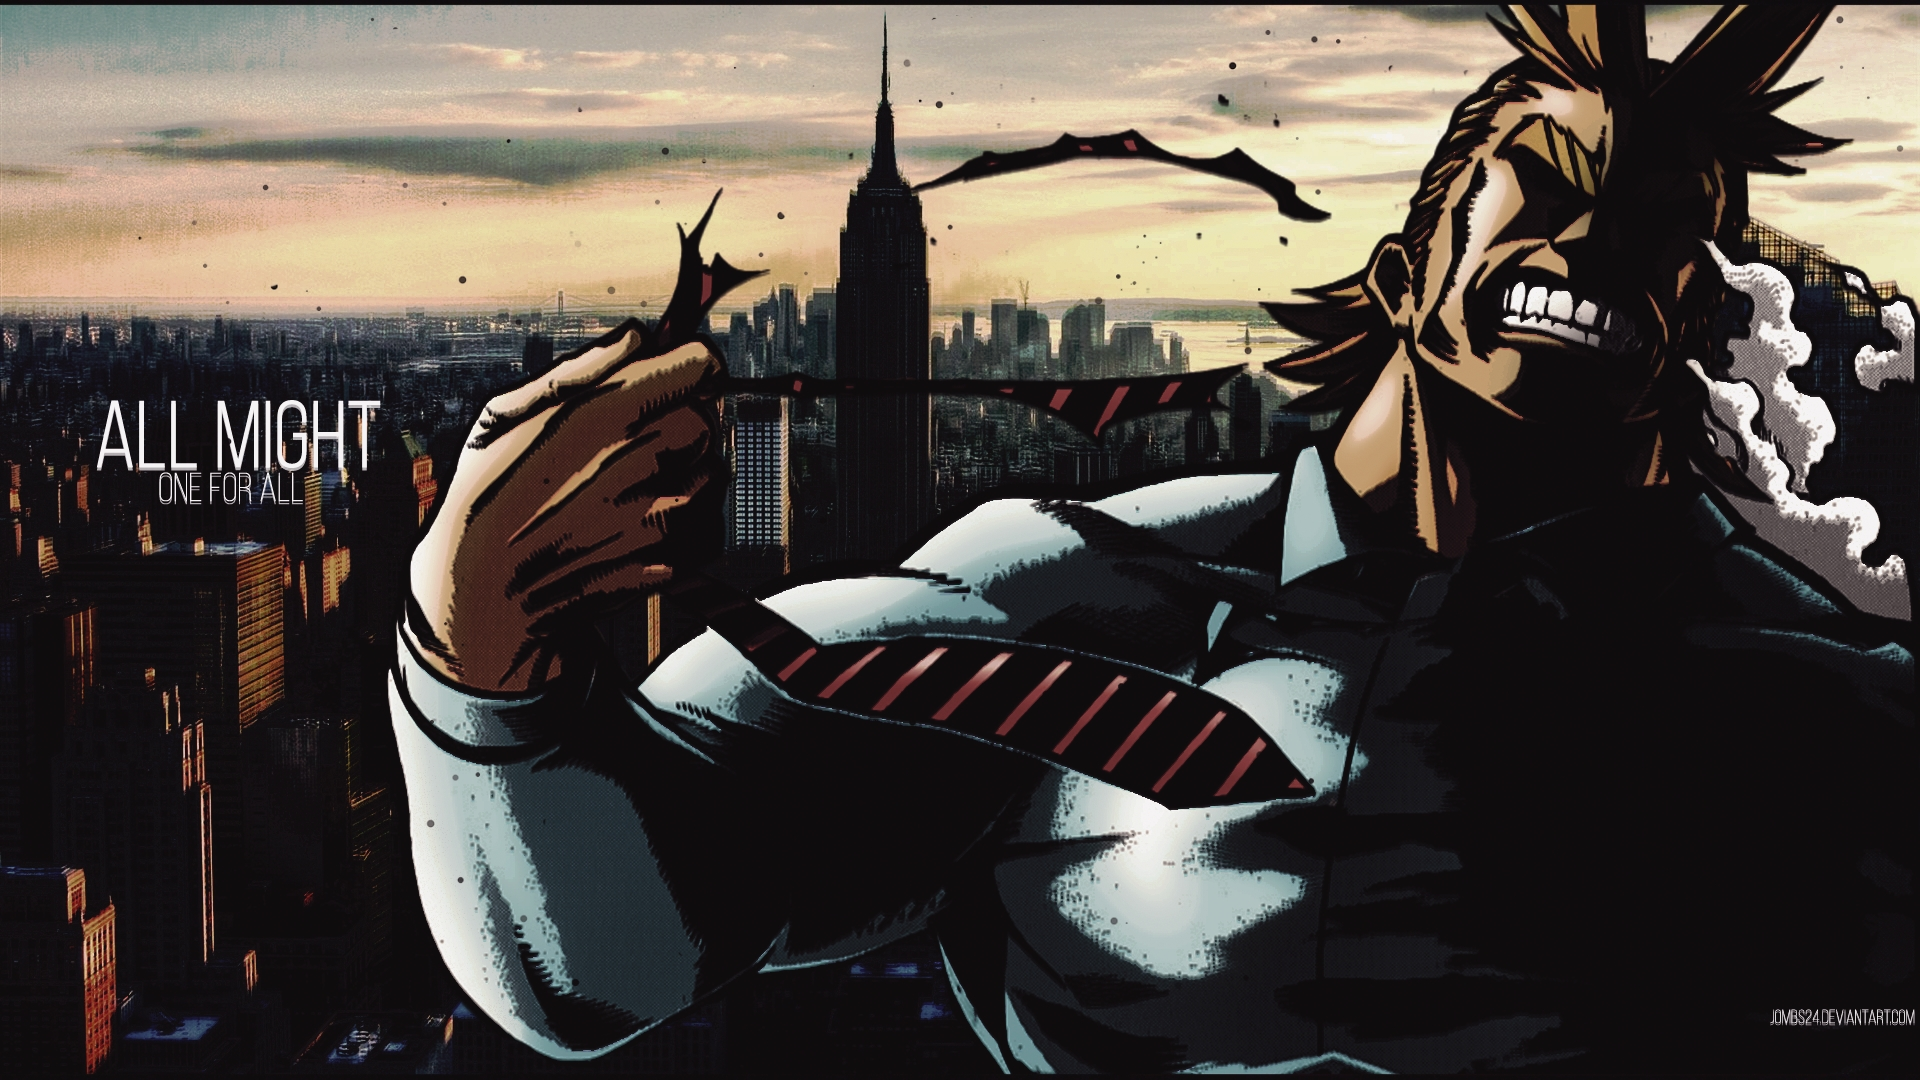 47 all might fonds d'écran hd | arrière-plans - wallpaper abyss